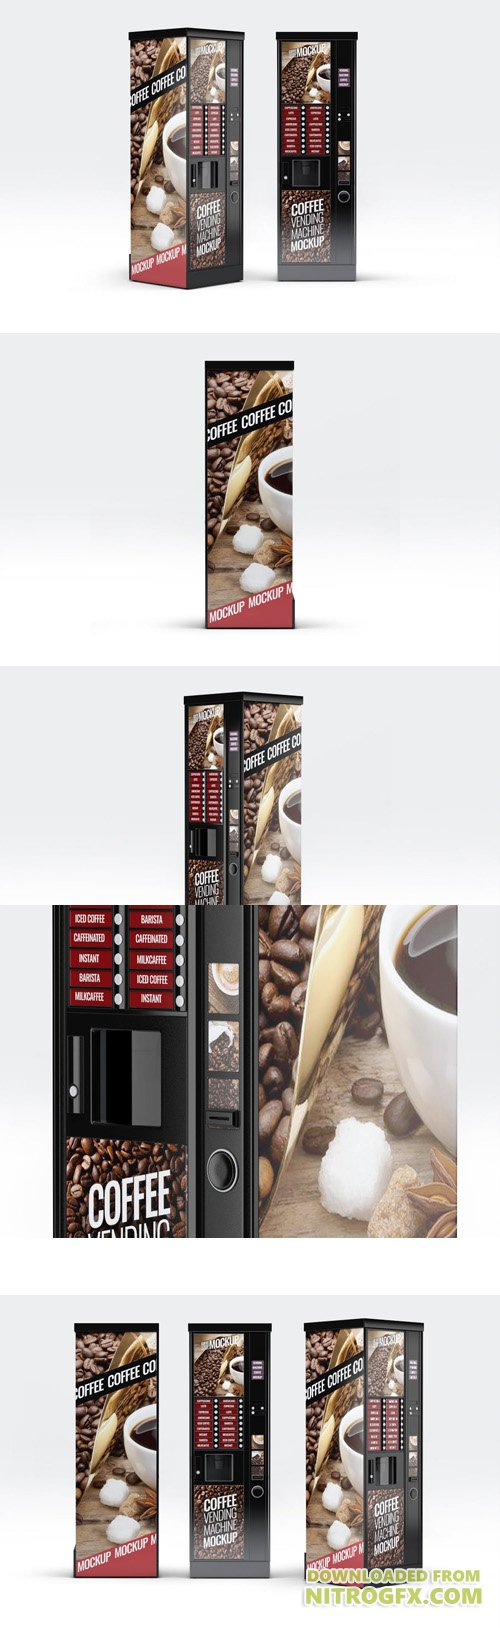 Coffee Vending Machine Mock-Up